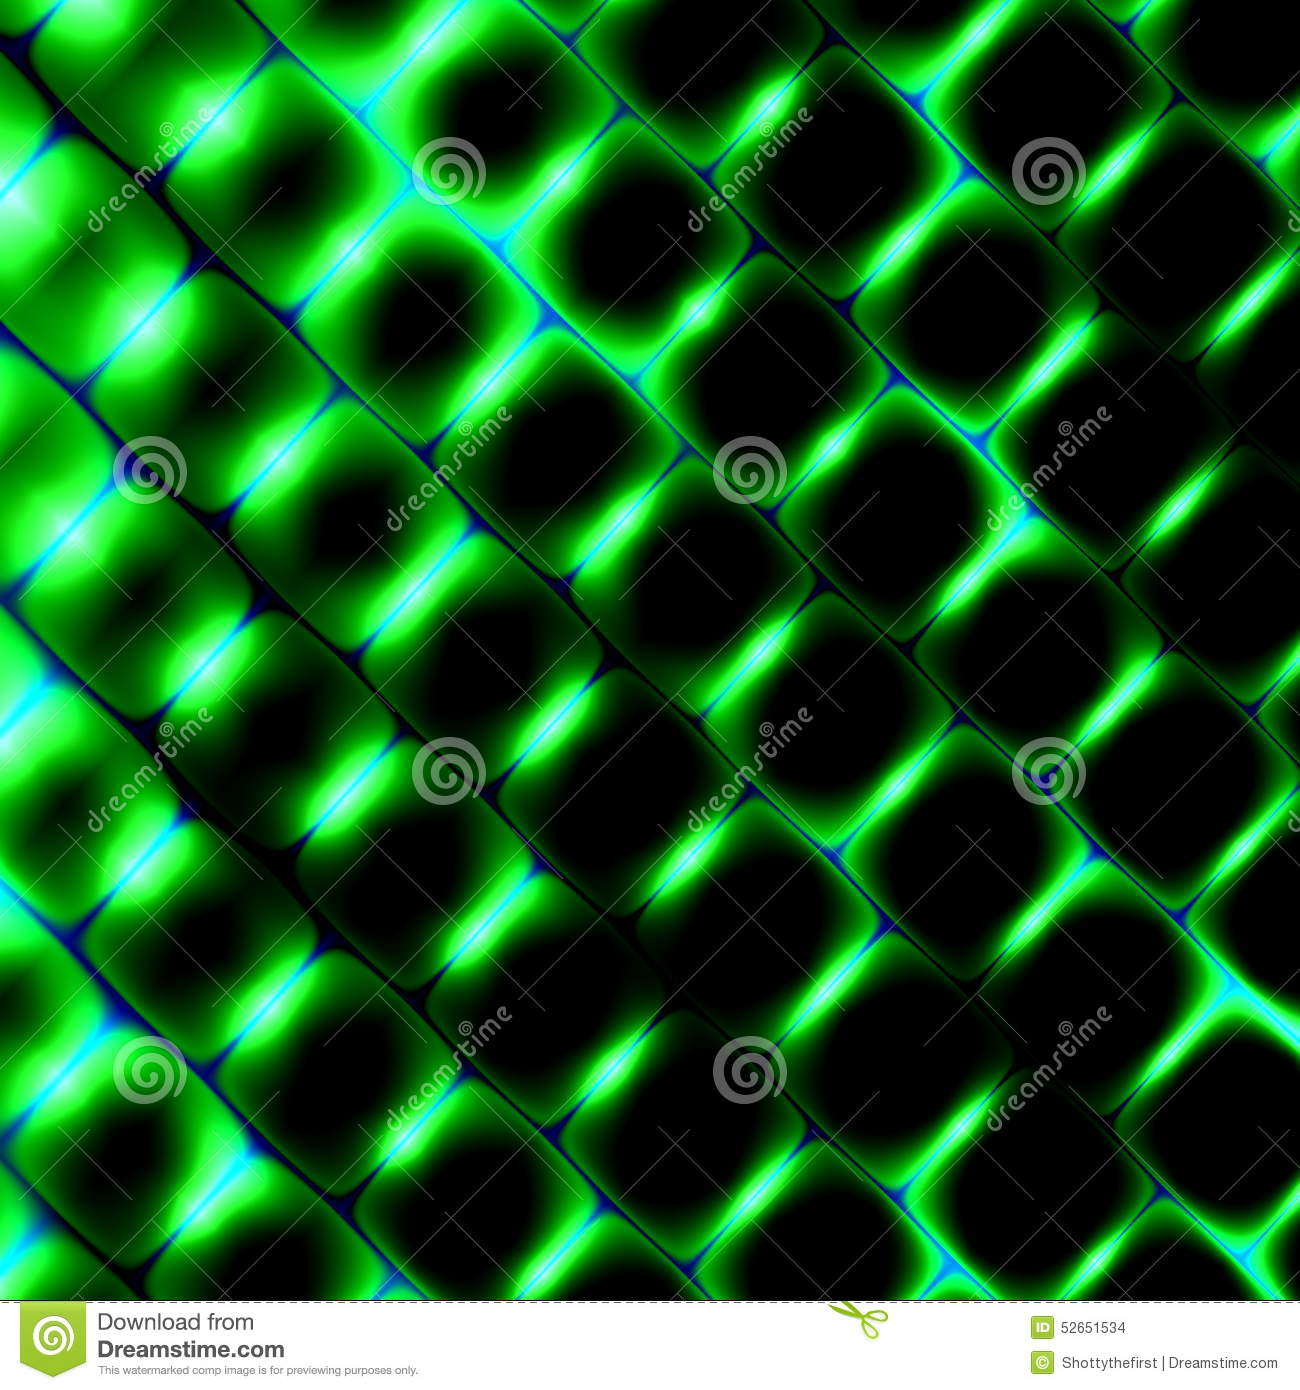 3d Square Shapes Under Green Light. Beautiful Science